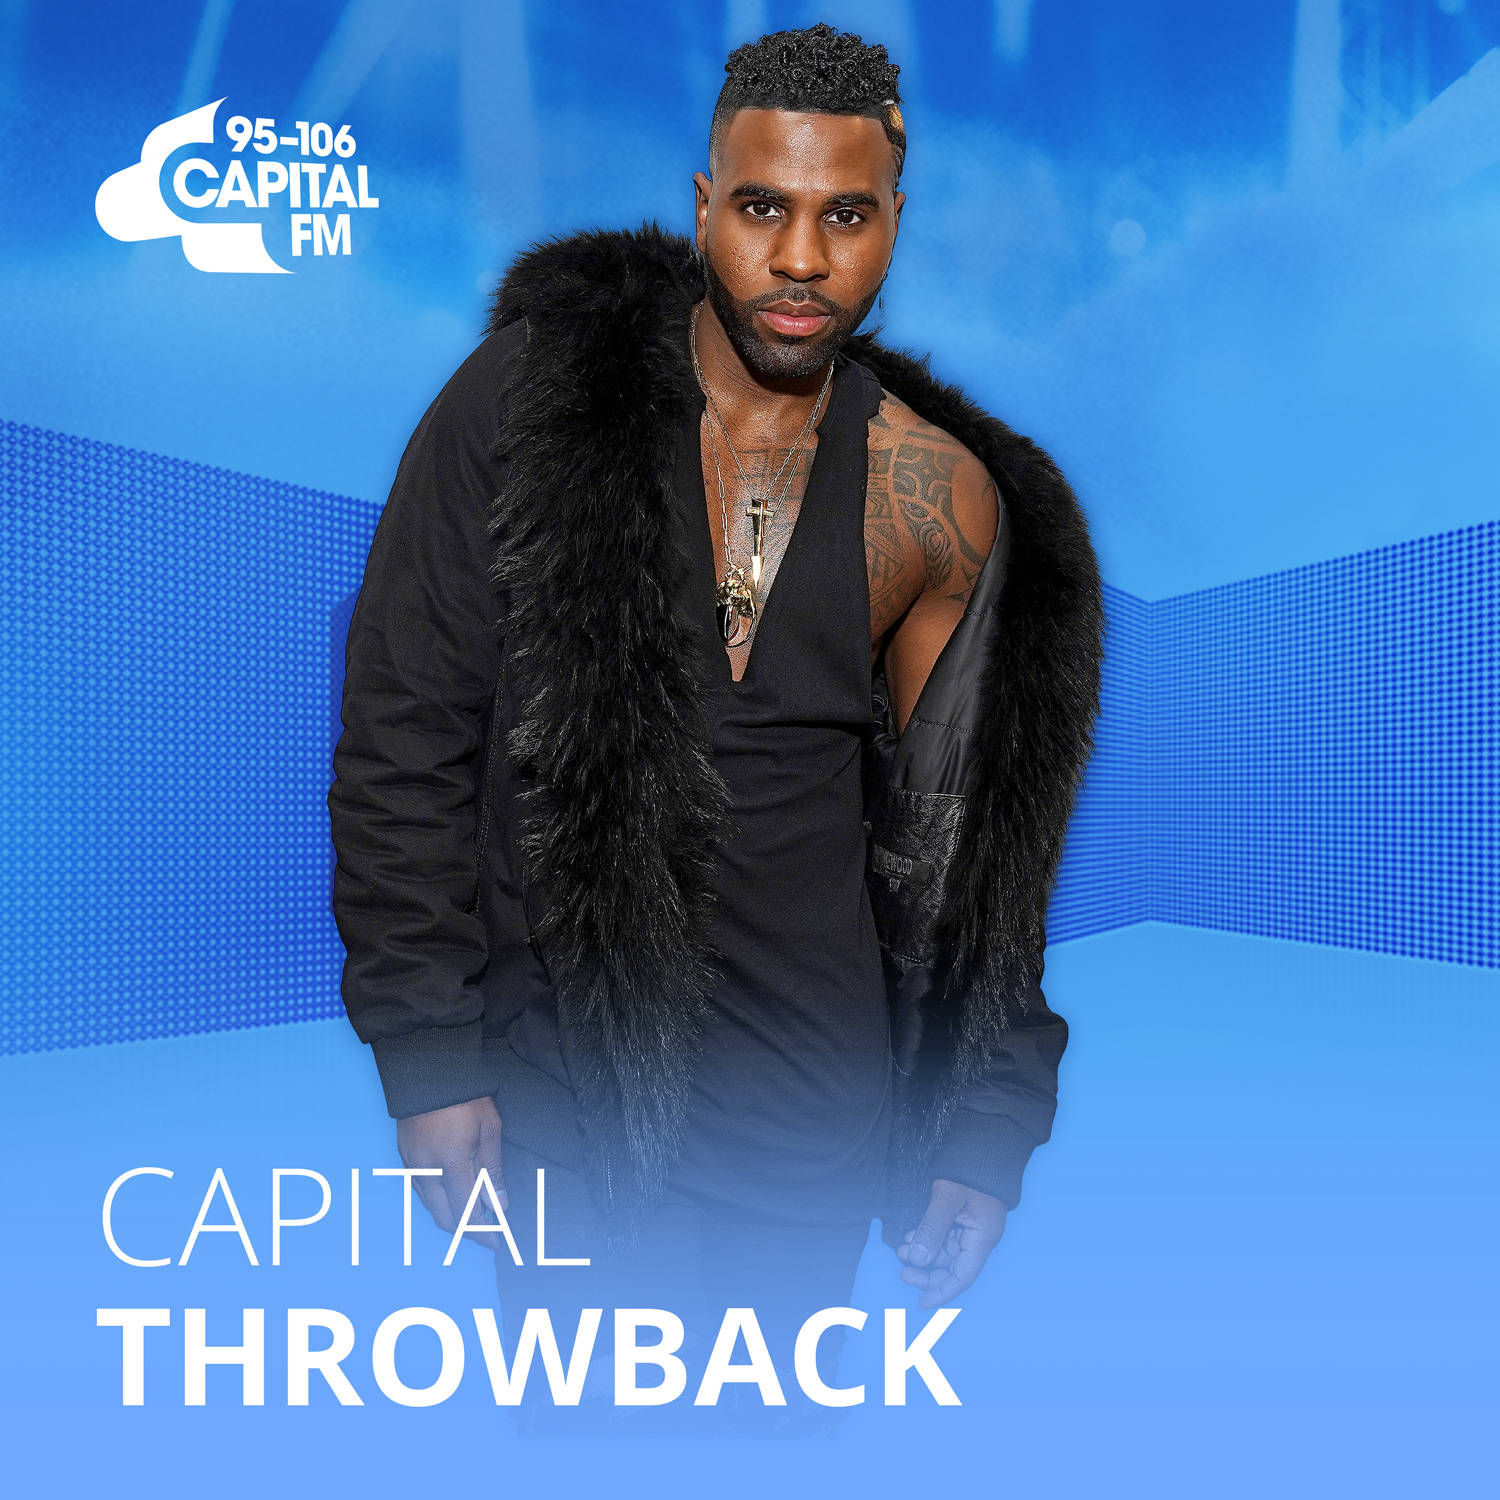 Capital Throwback image